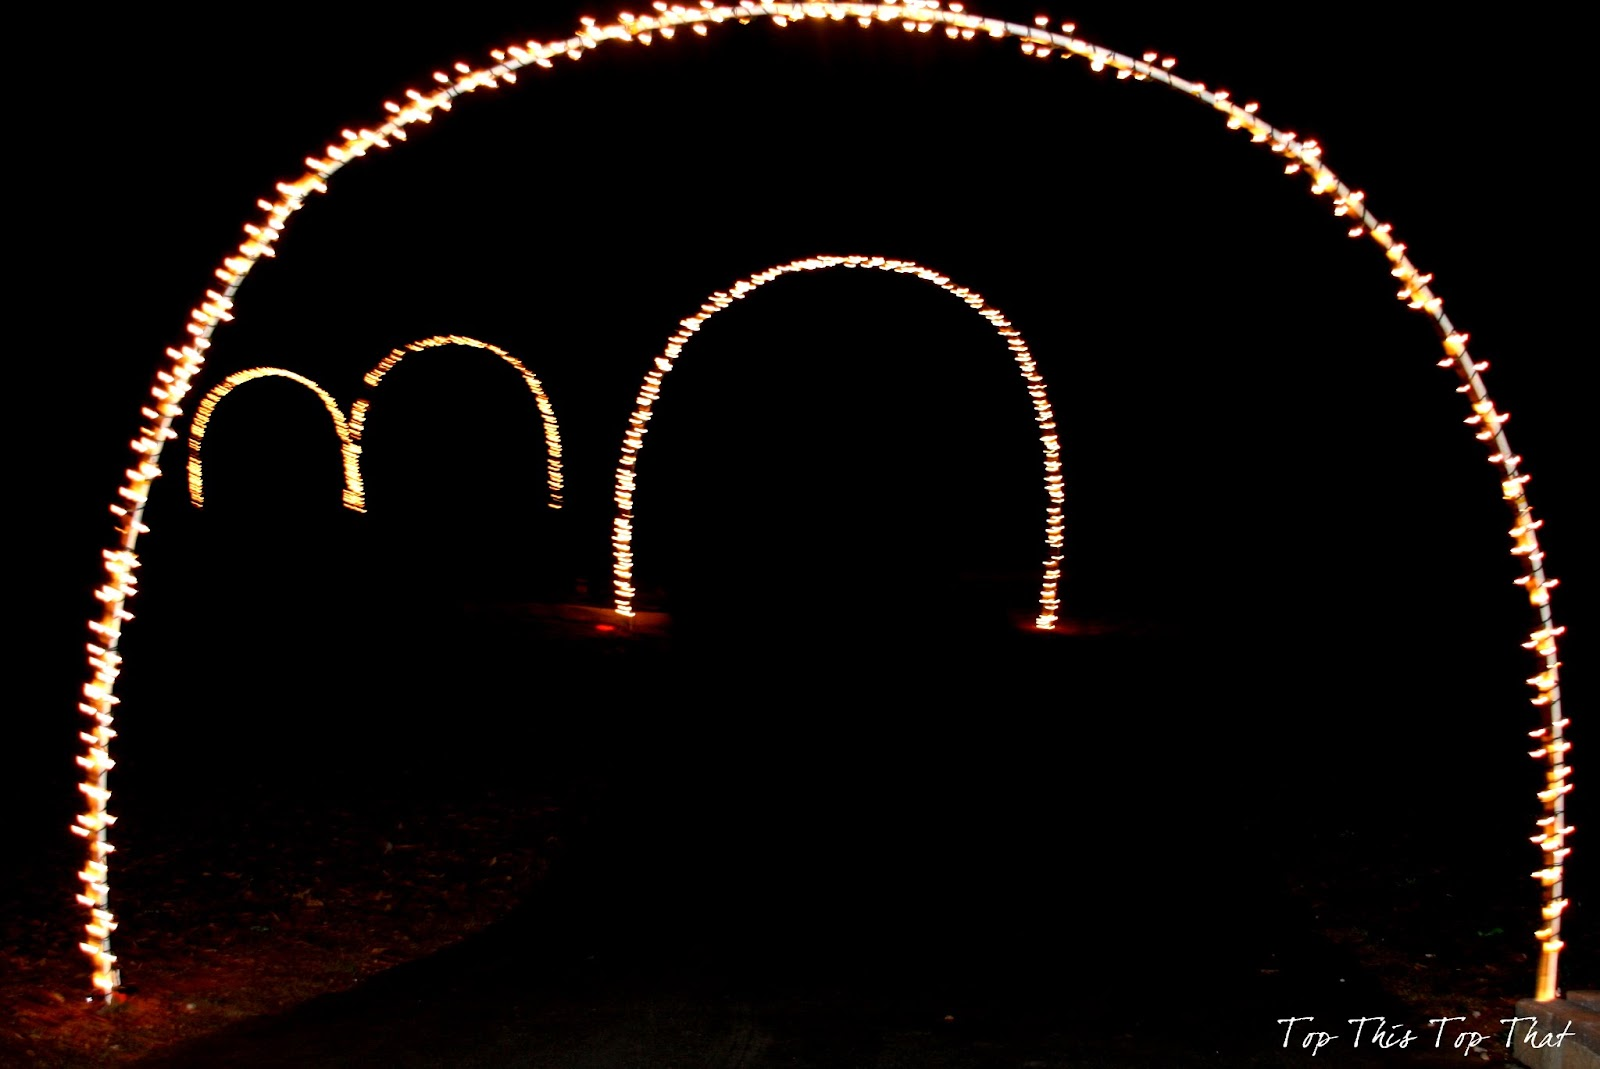 an area attraction is charging 6000 a car to drive through the holiday light exhibit that just seems like a lot of money